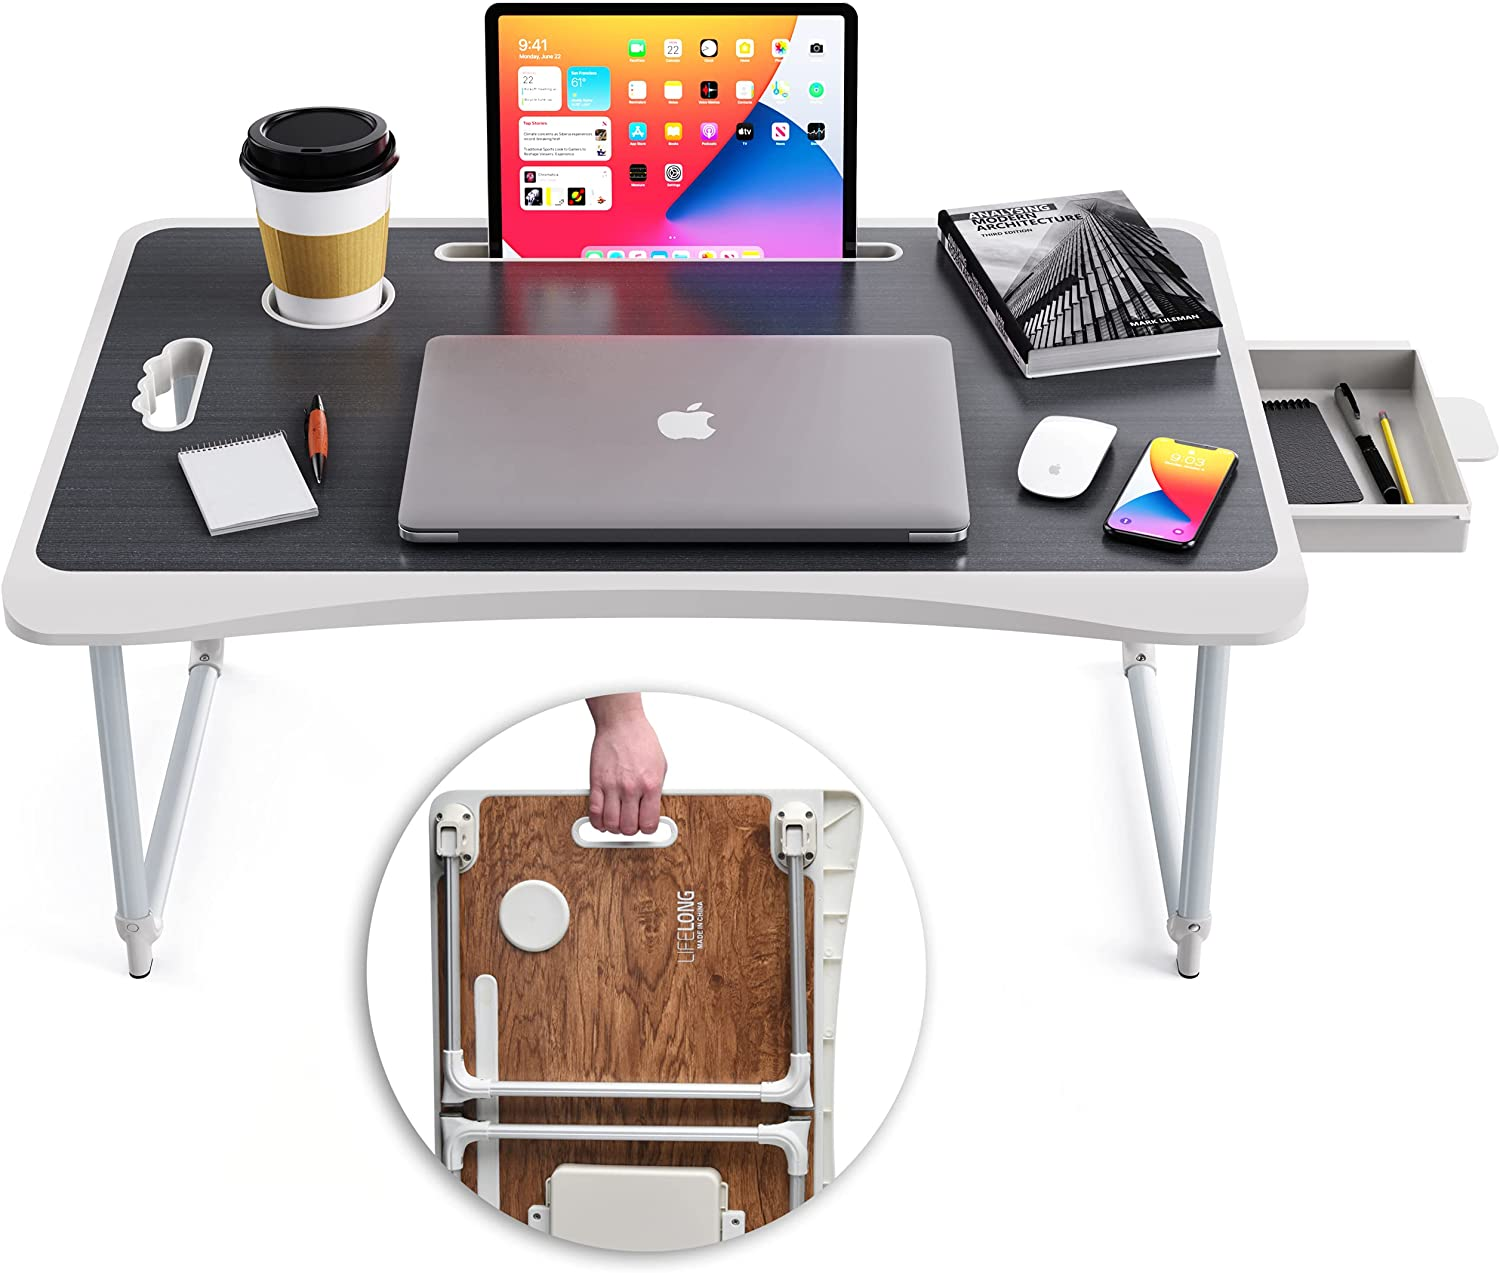 Foldable Max 66% OFF Laptop Table for Writing Desk and favorite Bed